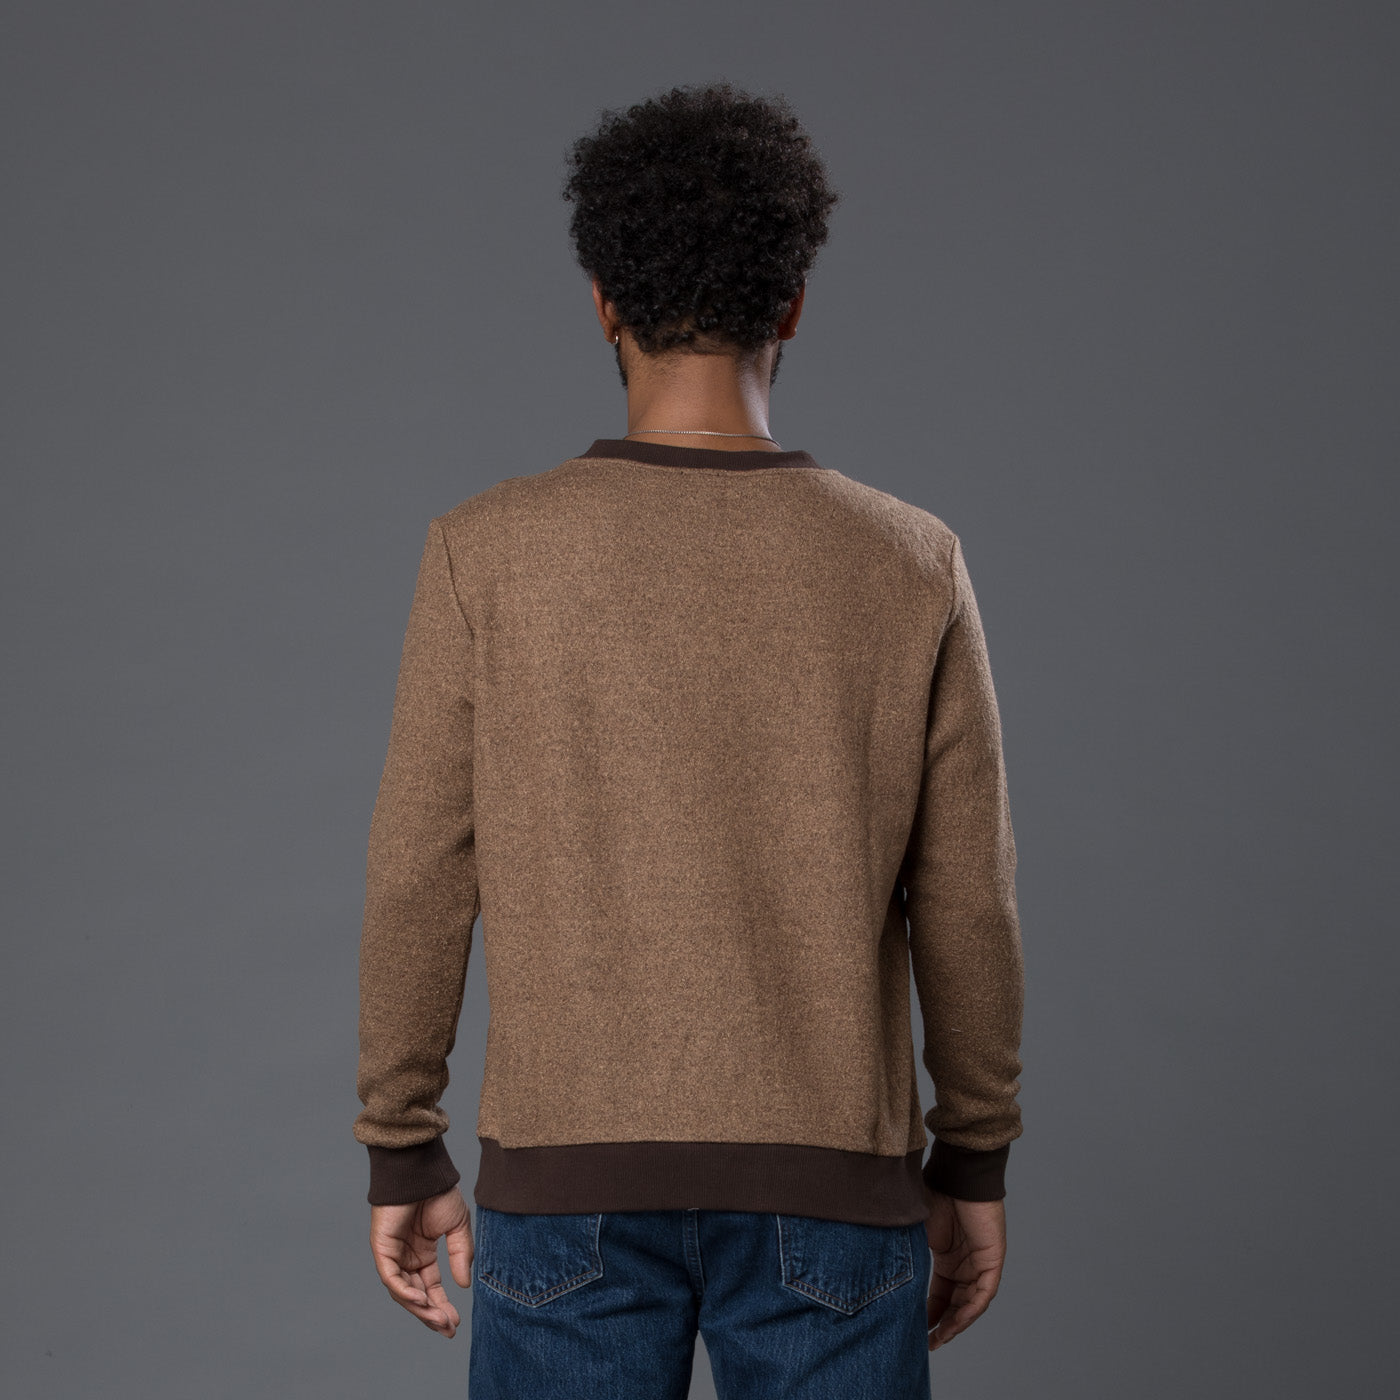 Thaddeus O'Neil Brown Sweater